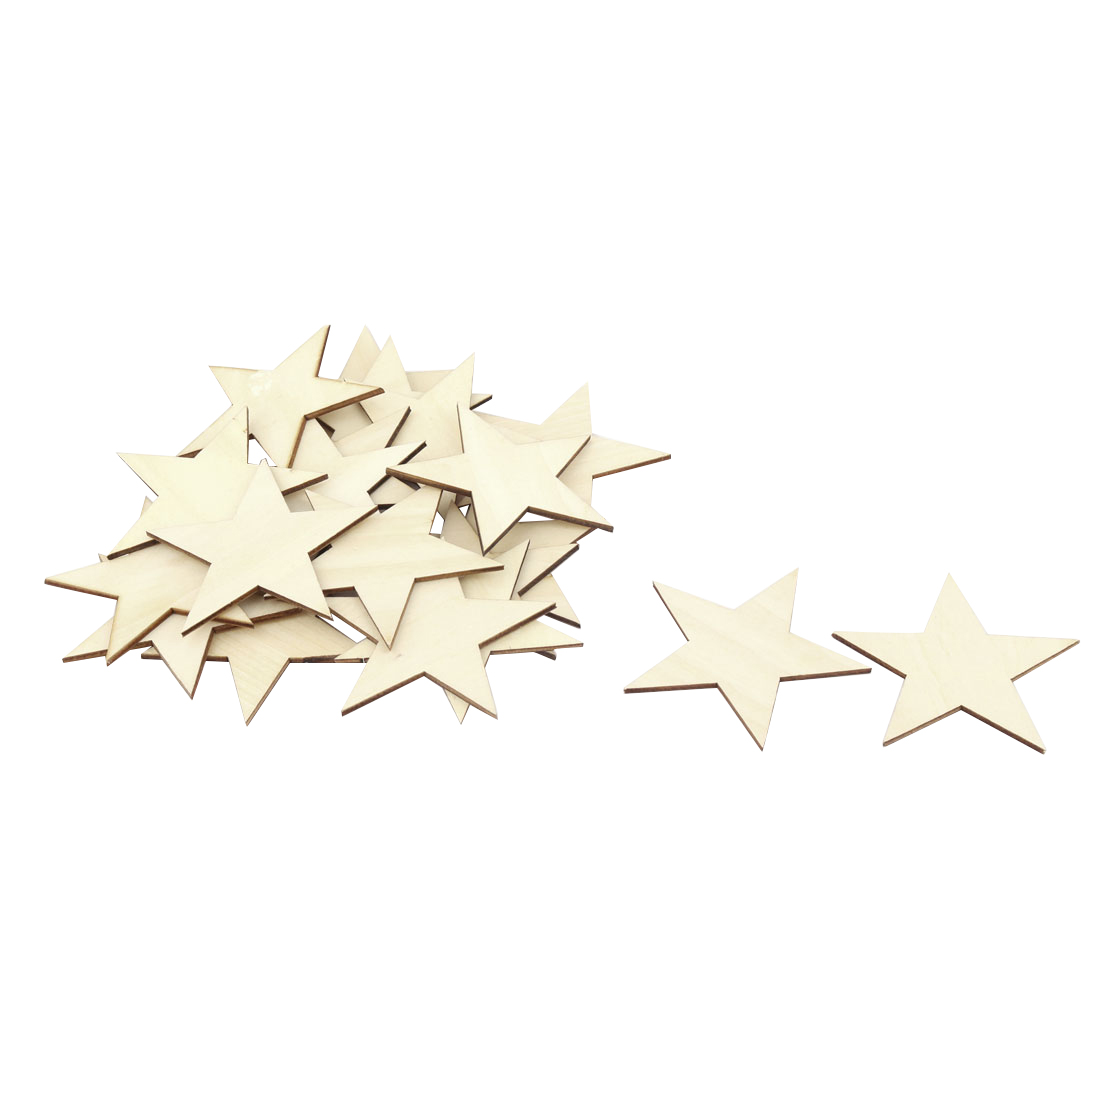 Wooden Star Shaped DIY Craft Christmas Tree Accessories Ornaments Beige 80 x 80mm 20pcs